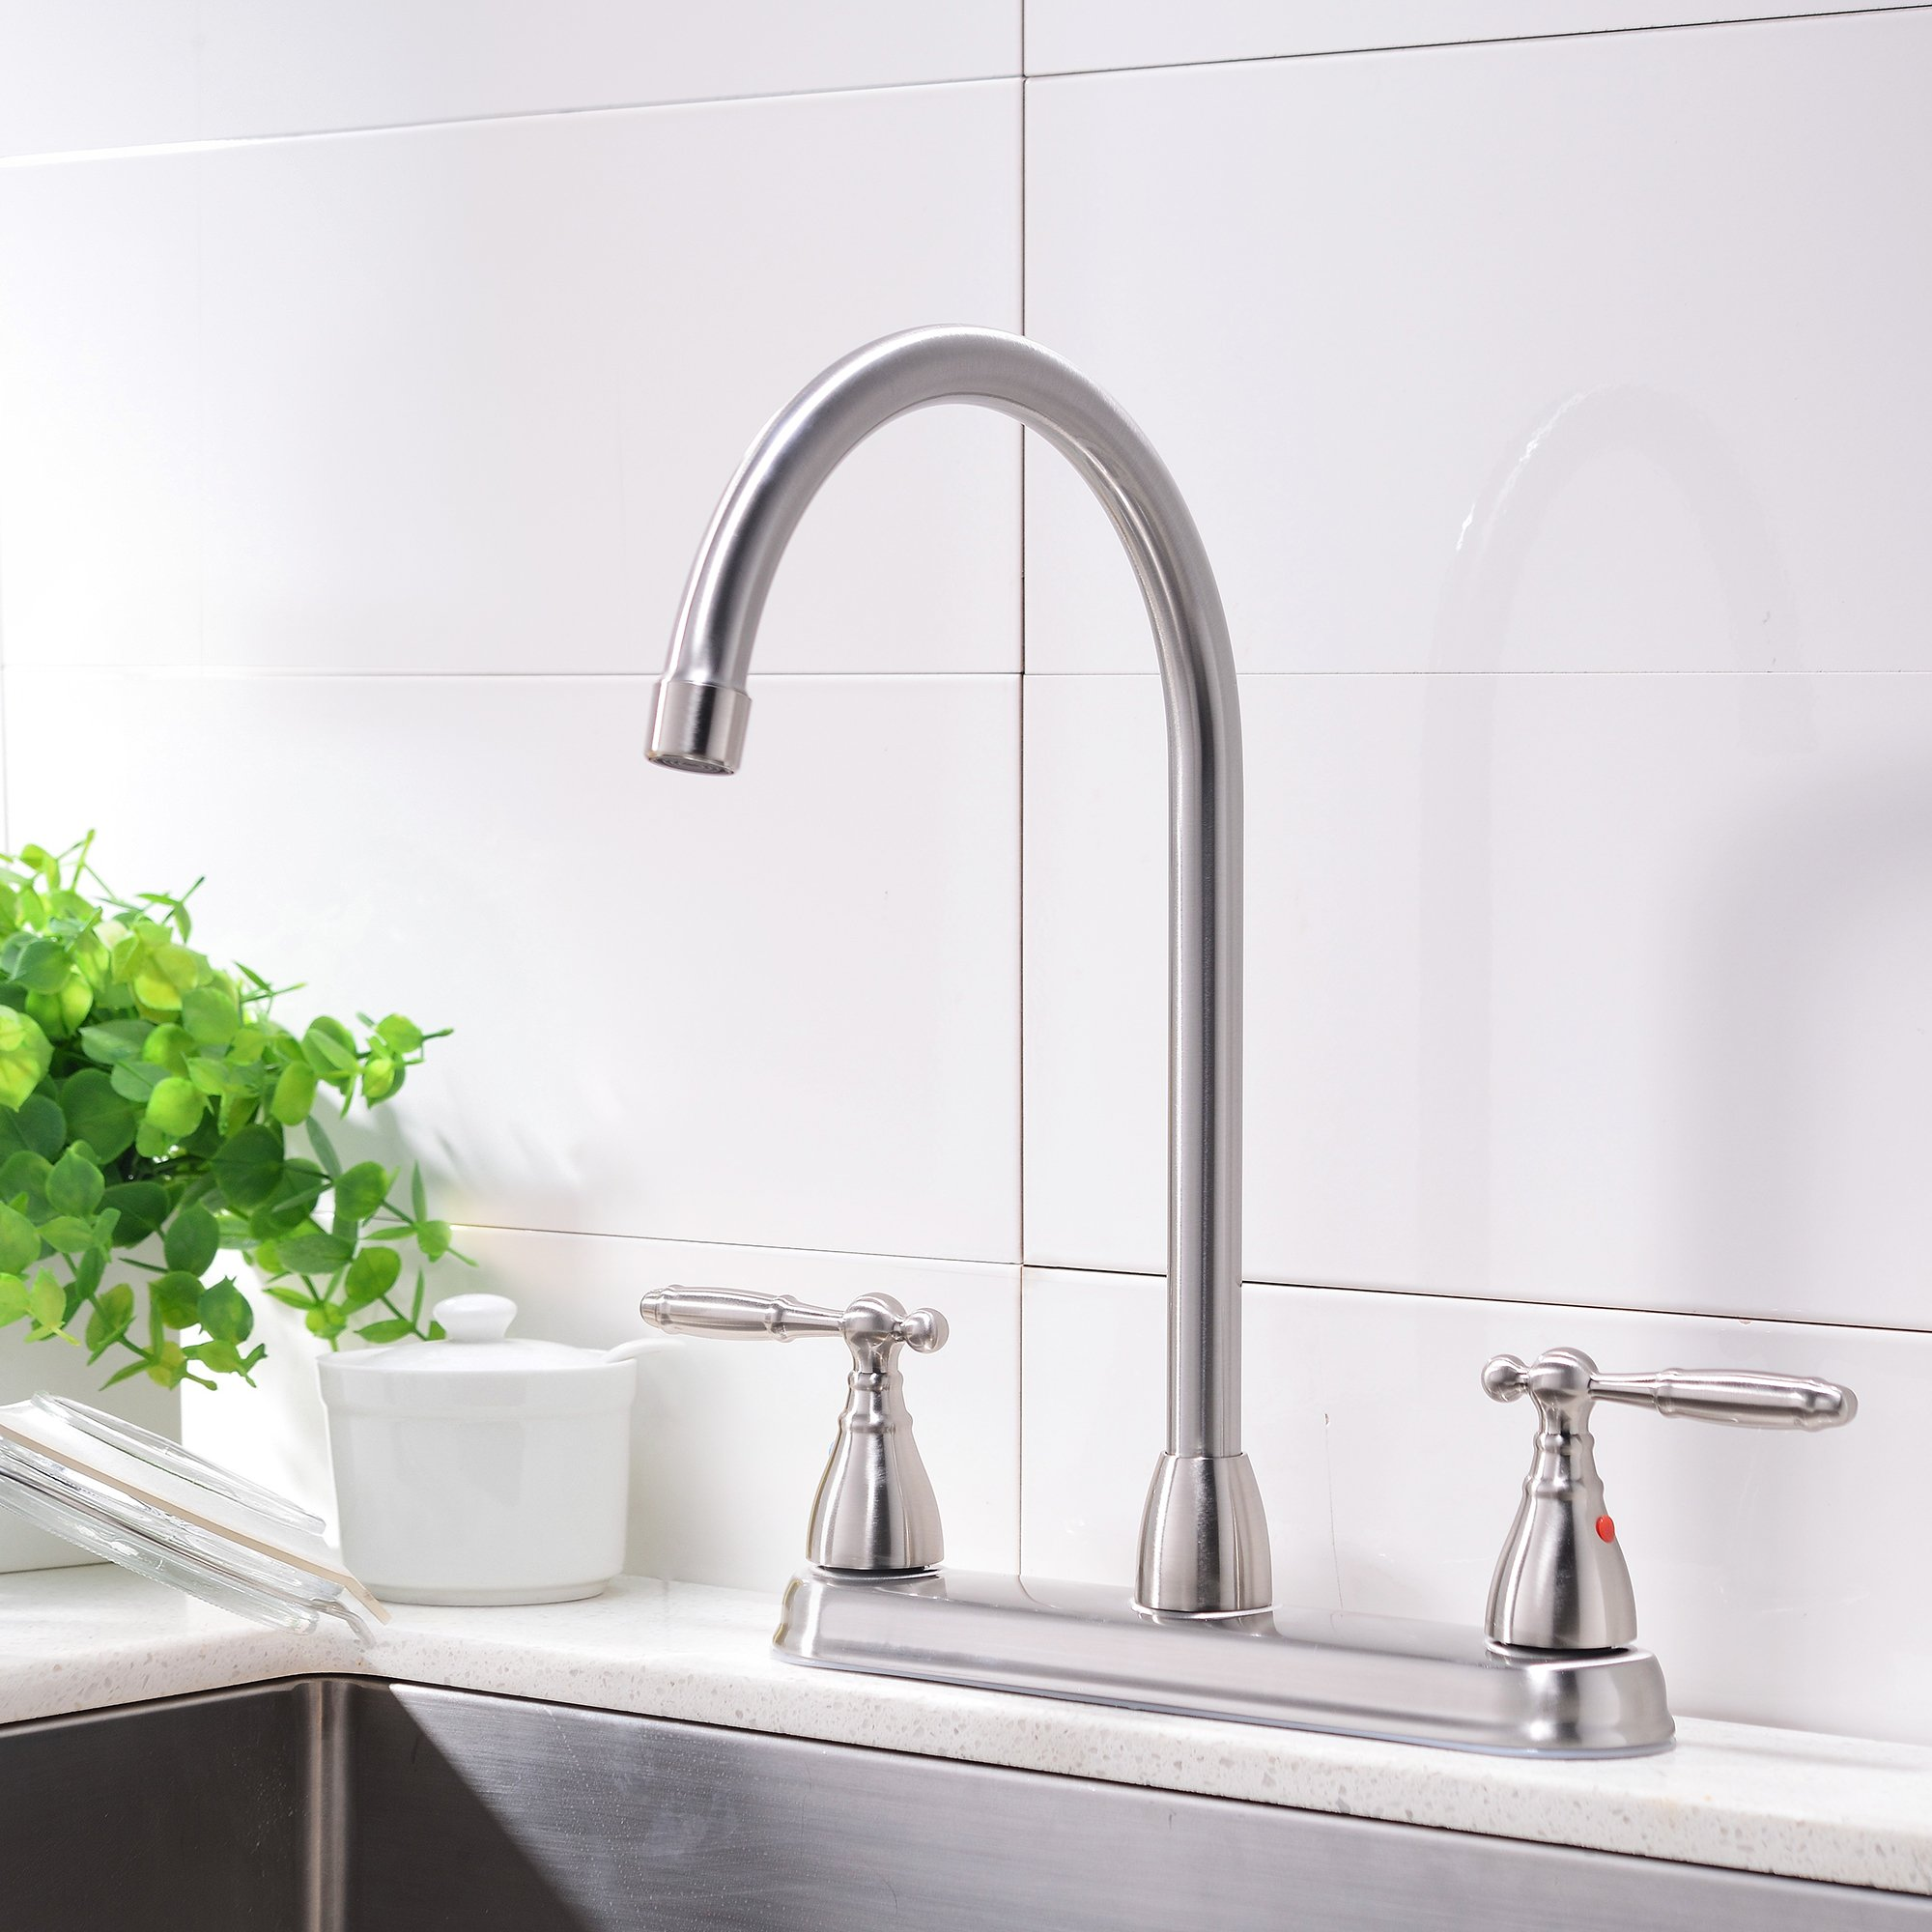 Comllen High Arc Swivel Spout Brushed Nickel Two Handle Kitchen Sink Faucet, Lead Free Kitchen Faucet